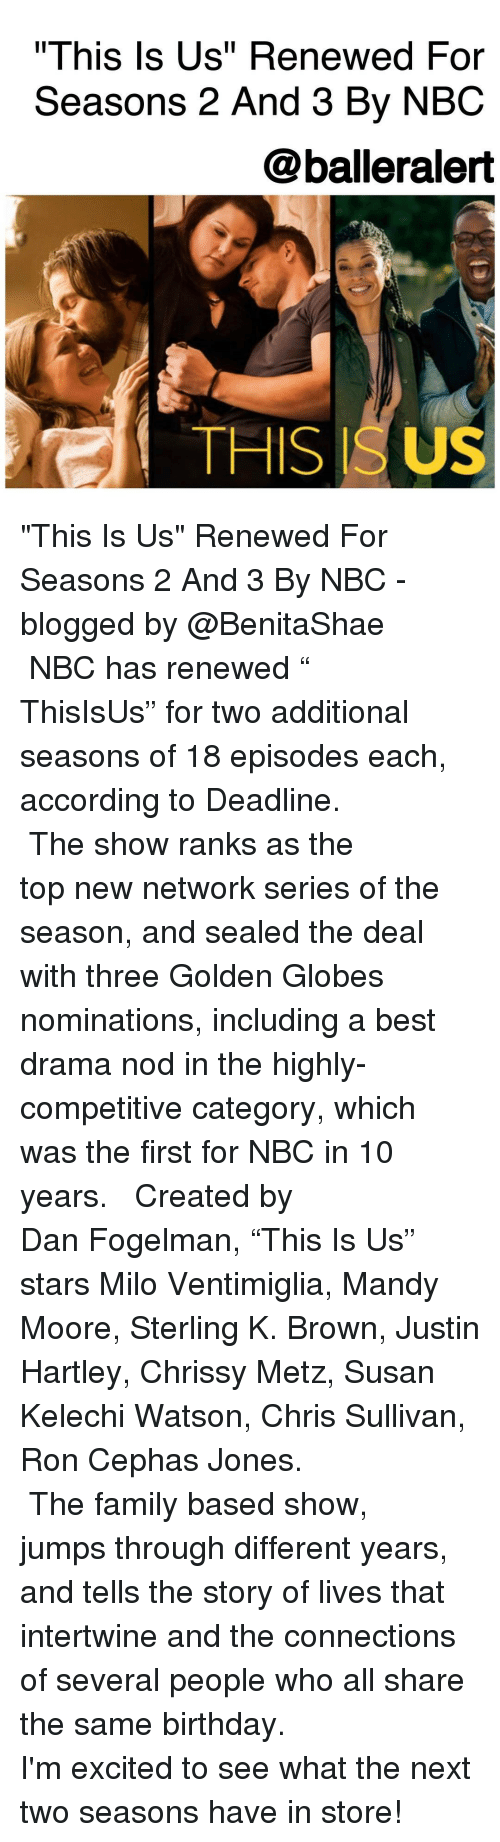 """Same Birthday: """"This Is Us"""" Renewed For  Seasons 2 And 3 By NBC  @balleralert  THIS ISUS """"This Is Us"""" Renewed For Seasons 2 And 3 By NBC -blogged by @BenitaShae ⠀⠀⠀⠀⠀⠀⠀⠀⠀ ⠀⠀⠀⠀⠀⠀⠀⠀⠀ NBC has renewed """" ThisIsUs"""" for two additional seasons of 18 episodes each, according to Deadline. ⠀⠀⠀⠀⠀⠀⠀⠀⠀ ⠀⠀⠀⠀⠀⠀⠀⠀⠀ The show ranks as the top new network series of the season, and sealed the deal with three Golden Globes nominations, including a best drama nod in the highly-competitive category, which was the first for NBC in 10 years. ⠀⠀⠀⠀⠀⠀⠀⠀⠀ ⠀⠀⠀⠀⠀⠀⠀⠀⠀ Created by Dan Fogelman, """"This Is Us"""" stars Milo Ventimiglia, Mandy Moore, Sterling K. Brown, Justin Hartley, Chrissy Metz, Susan Kelechi Watson, Chris Sullivan, Ron Cephas Jones. ⠀⠀⠀⠀⠀⠀⠀⠀⠀ ⠀⠀⠀⠀⠀⠀⠀⠀⠀ The family based show, jumps through different years, and tells the story of lives that intertwine and the connections of several people who all share the same birthday. ⠀⠀⠀⠀⠀⠀⠀⠀⠀ ⠀⠀⠀⠀⠀⠀⠀⠀⠀ I'm excited to see what the next two seasons have in store!"""